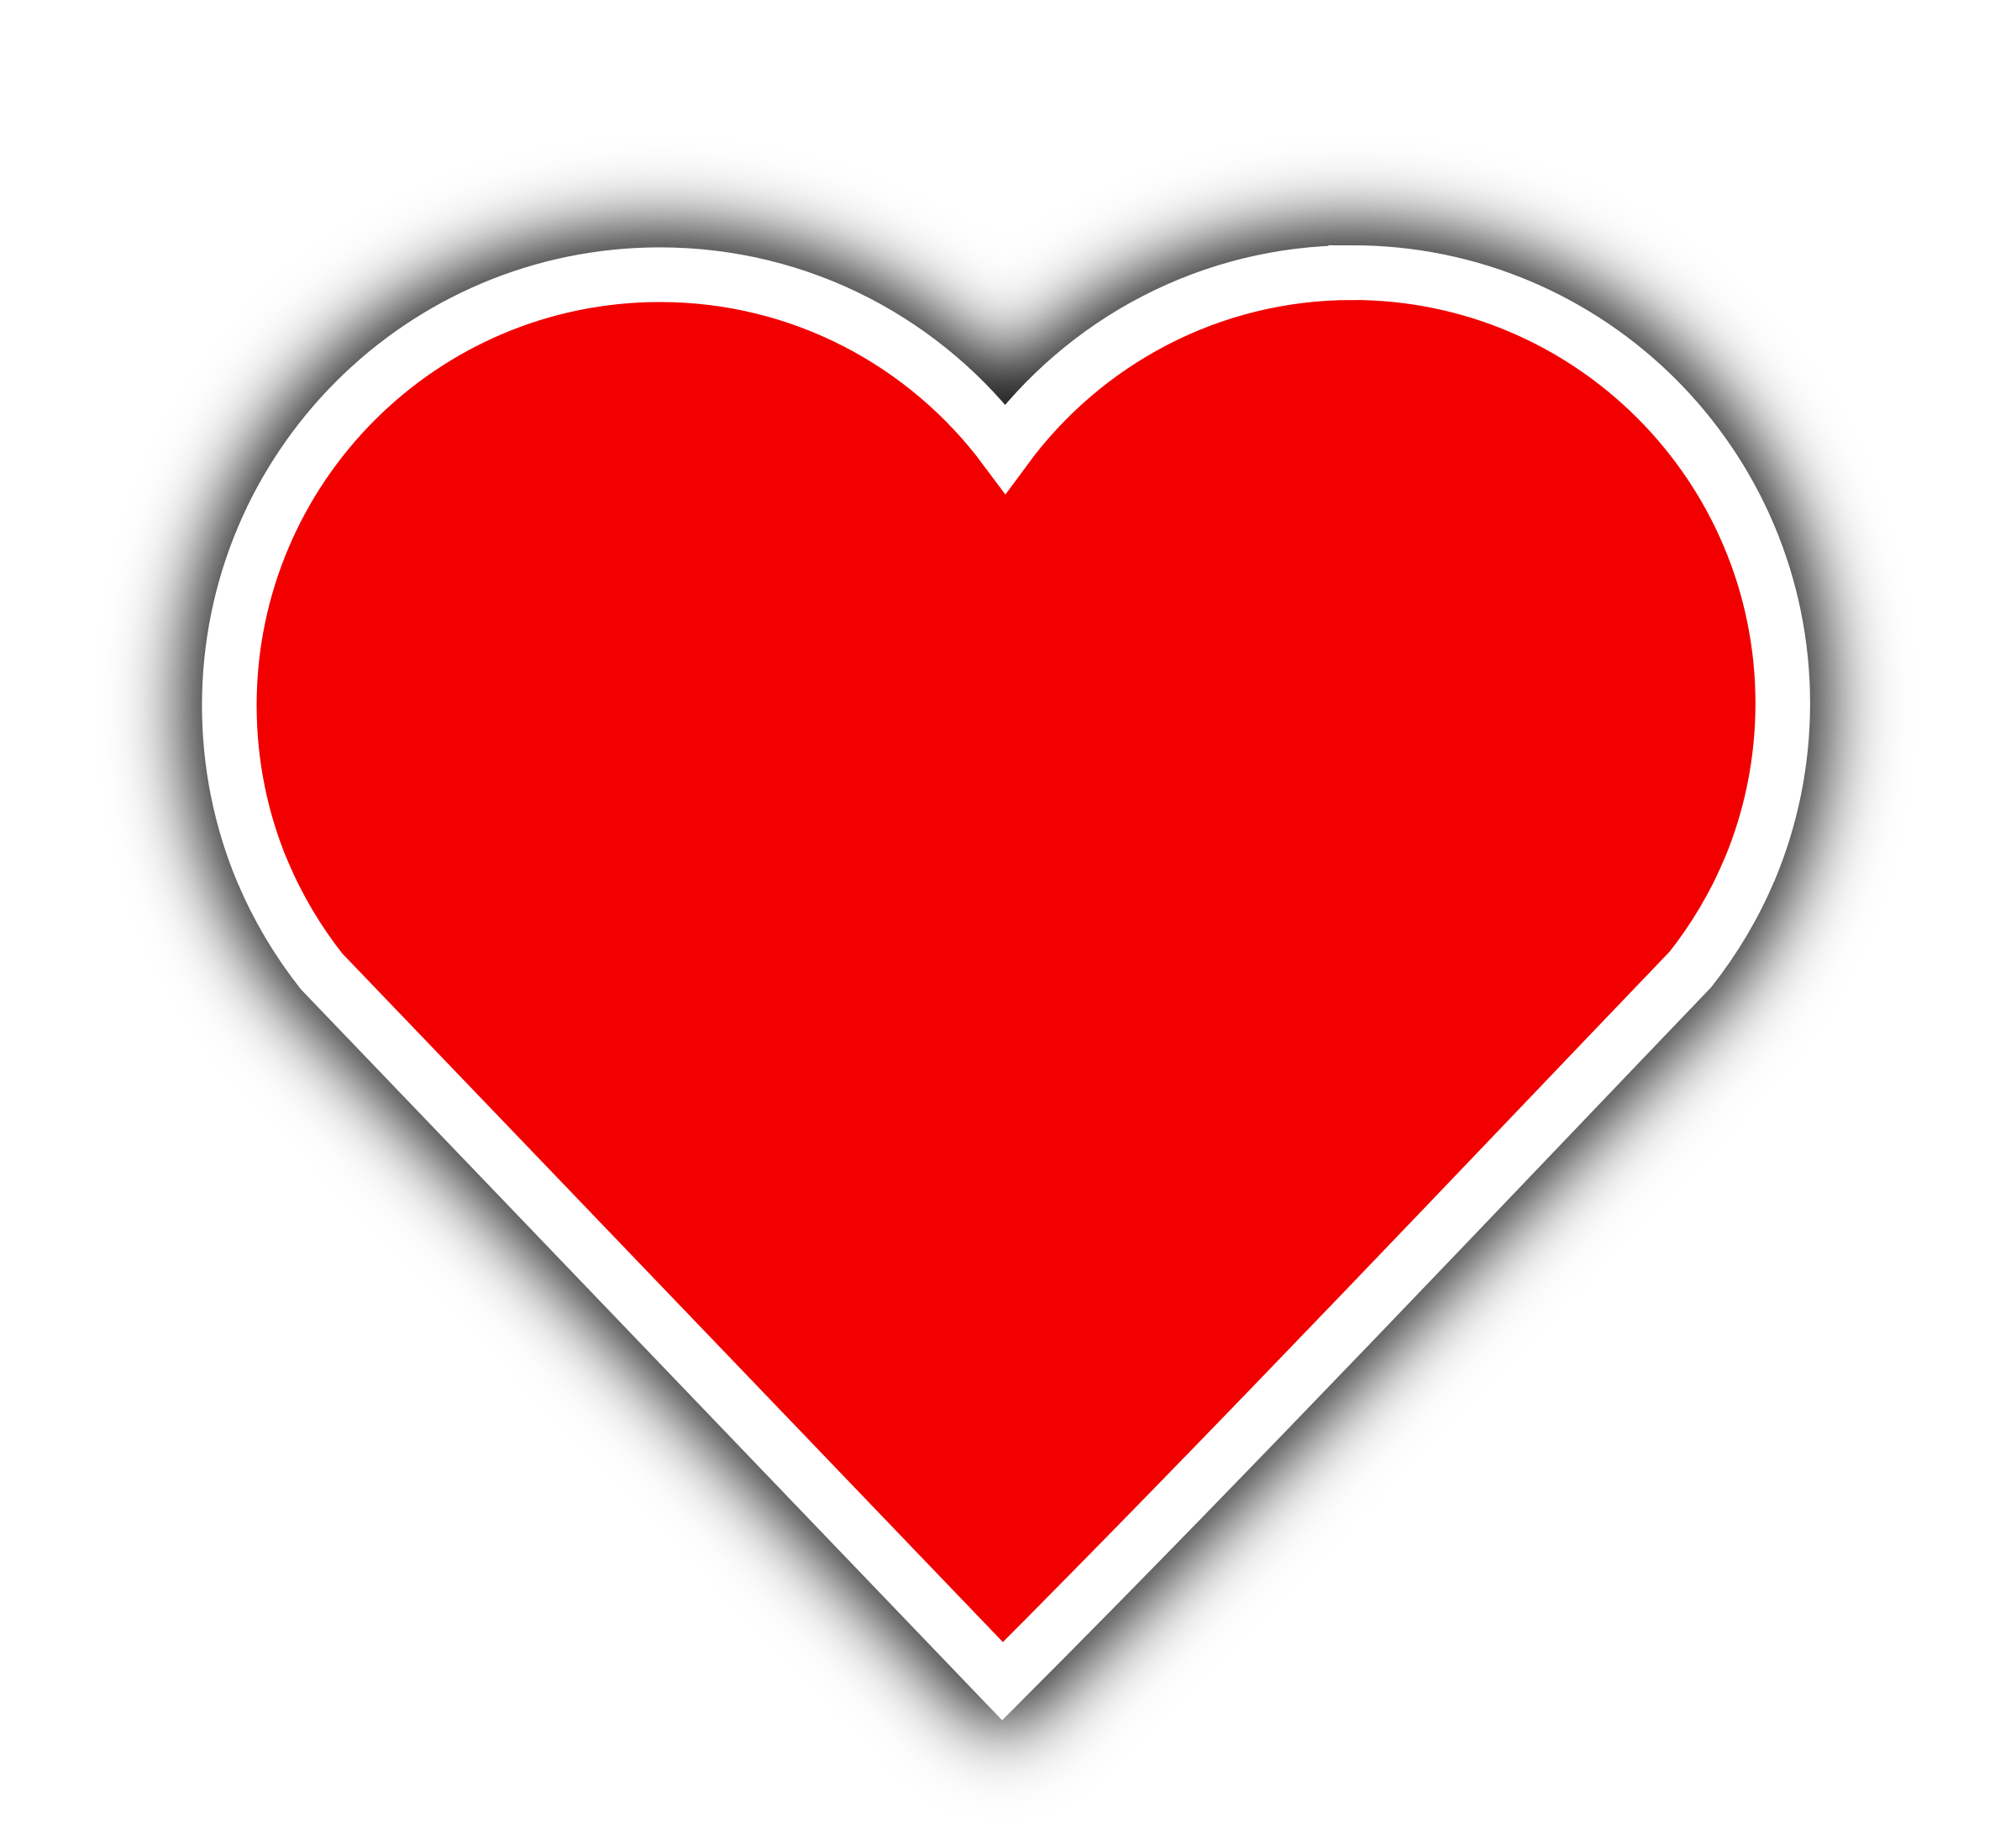 Red Heart Pictures   Free download on ClipArtMag